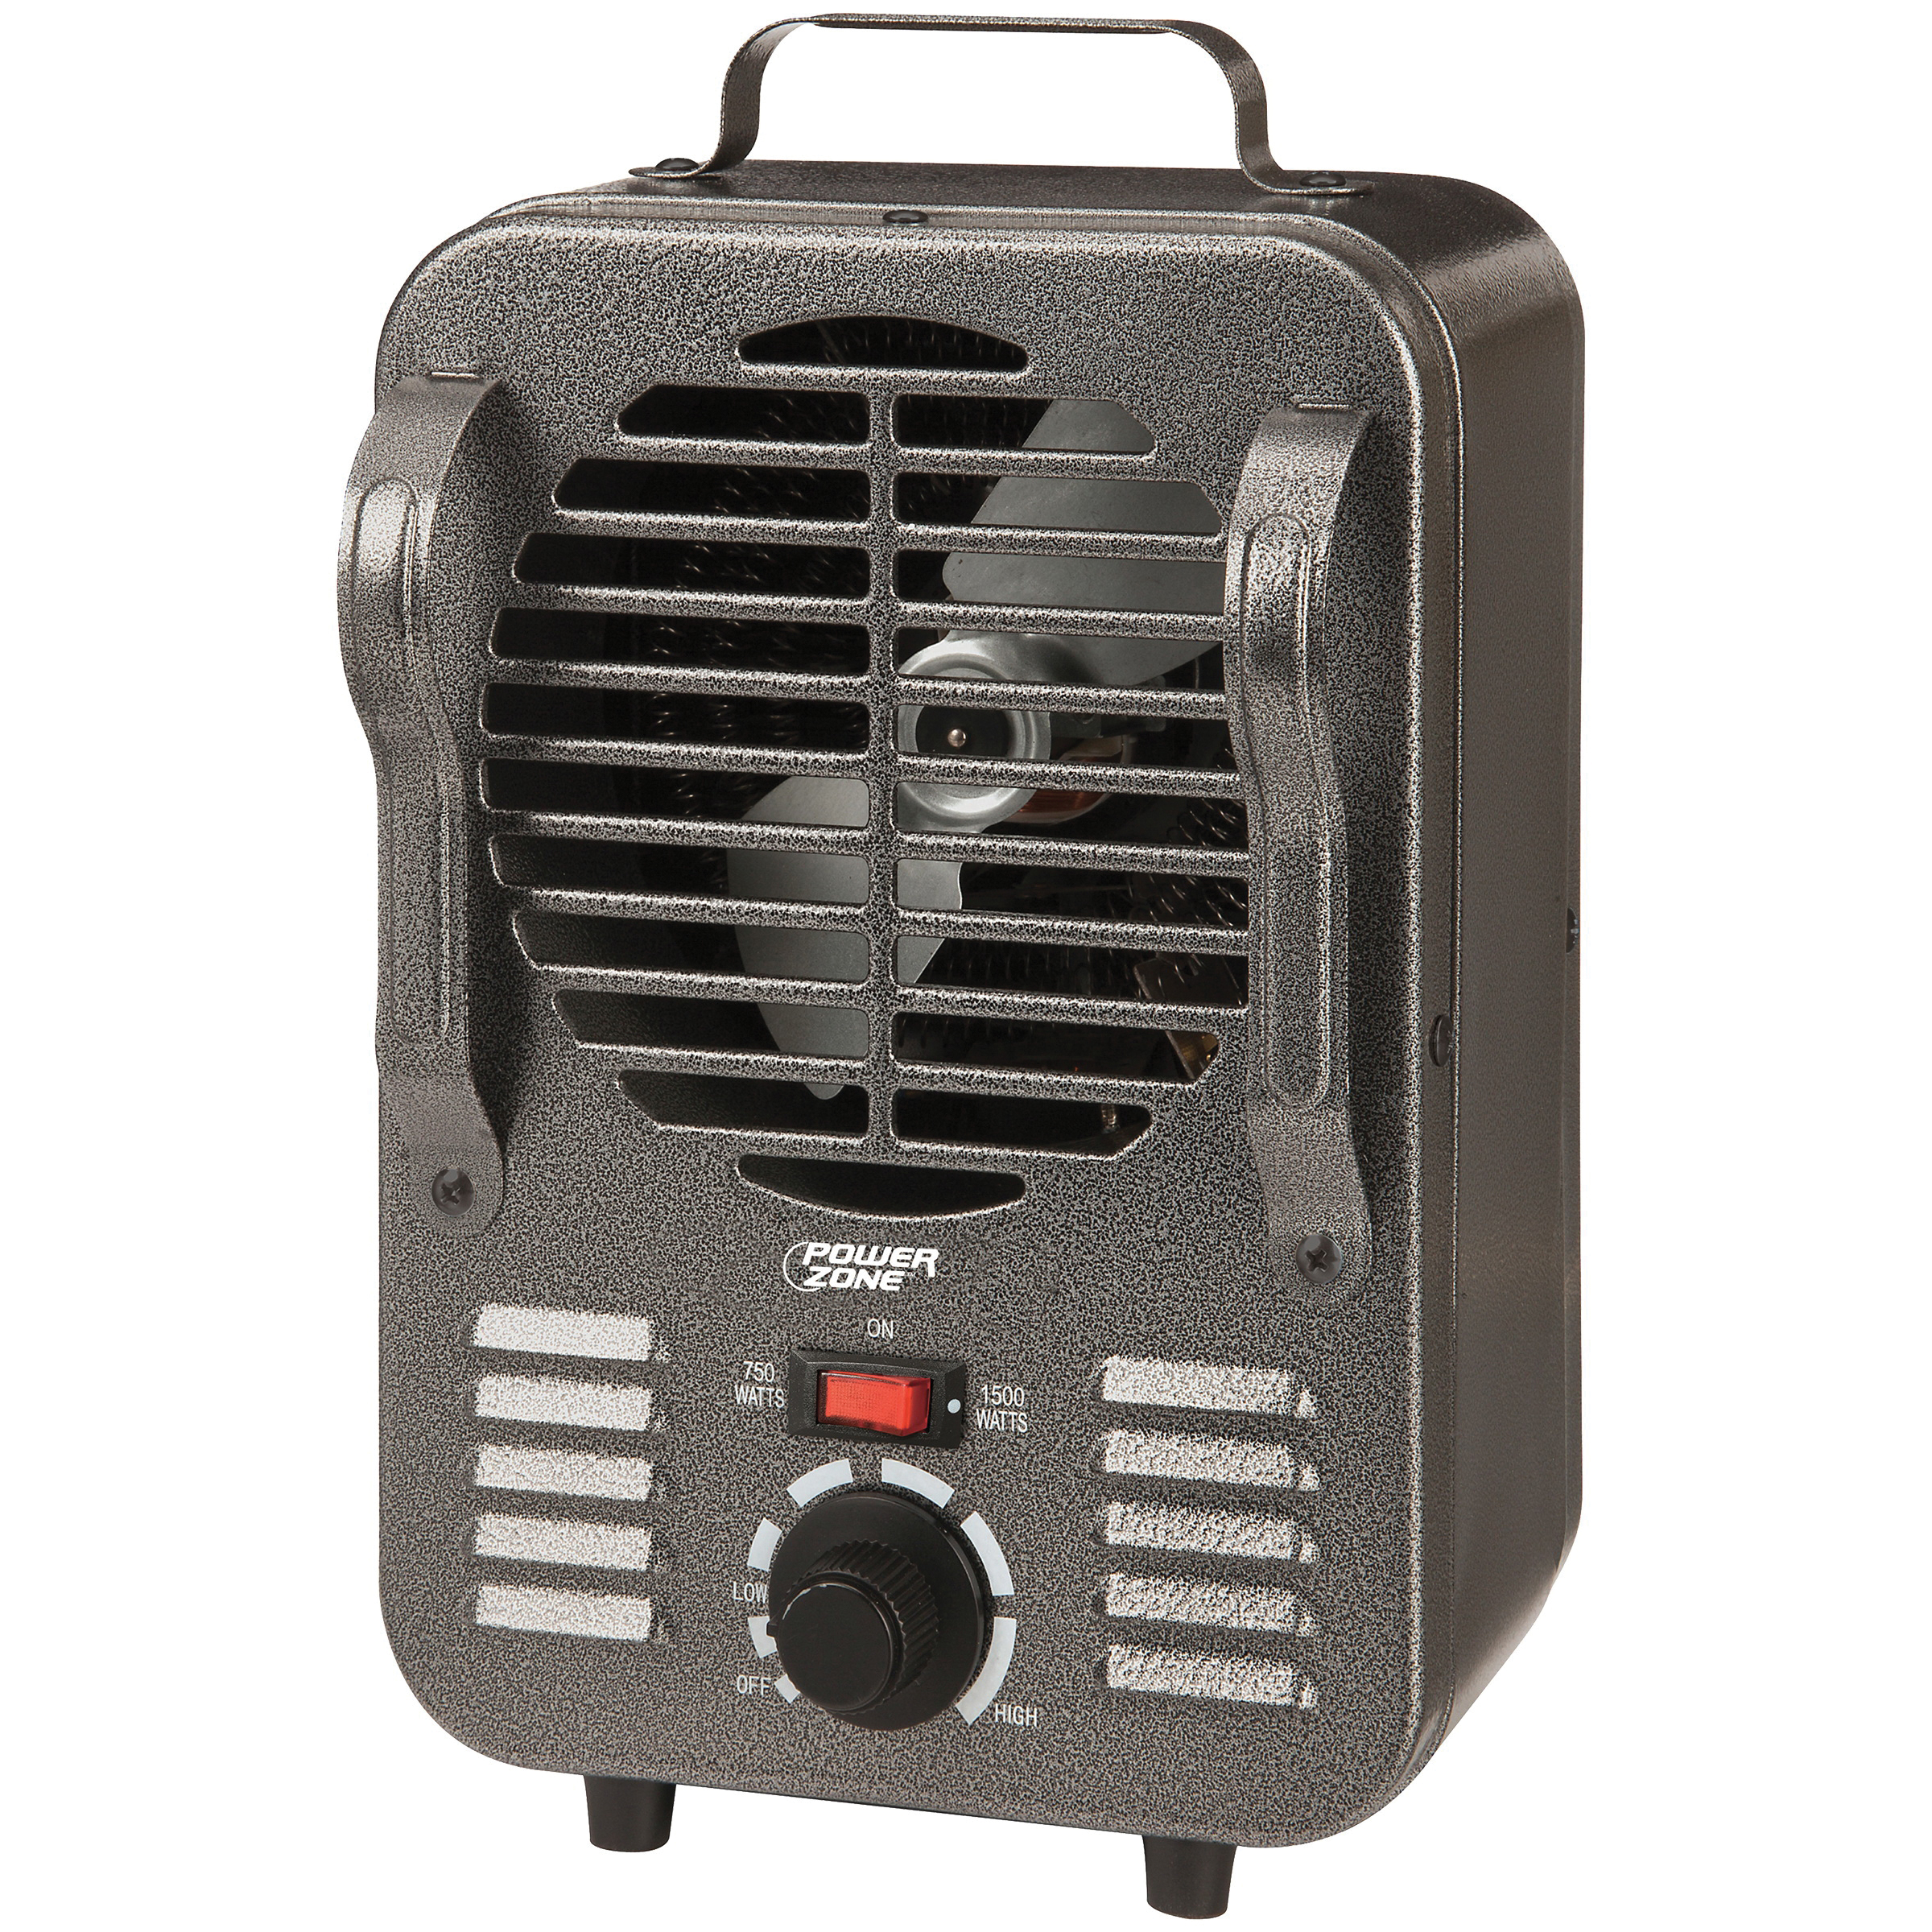 Picture of PowerZone TFH-204 Mini Milkhouse Heater 750/1500W Grey, 12.5 A, 120 V, 750/1500 W, 1500 W Heating, 2-Heating Stage